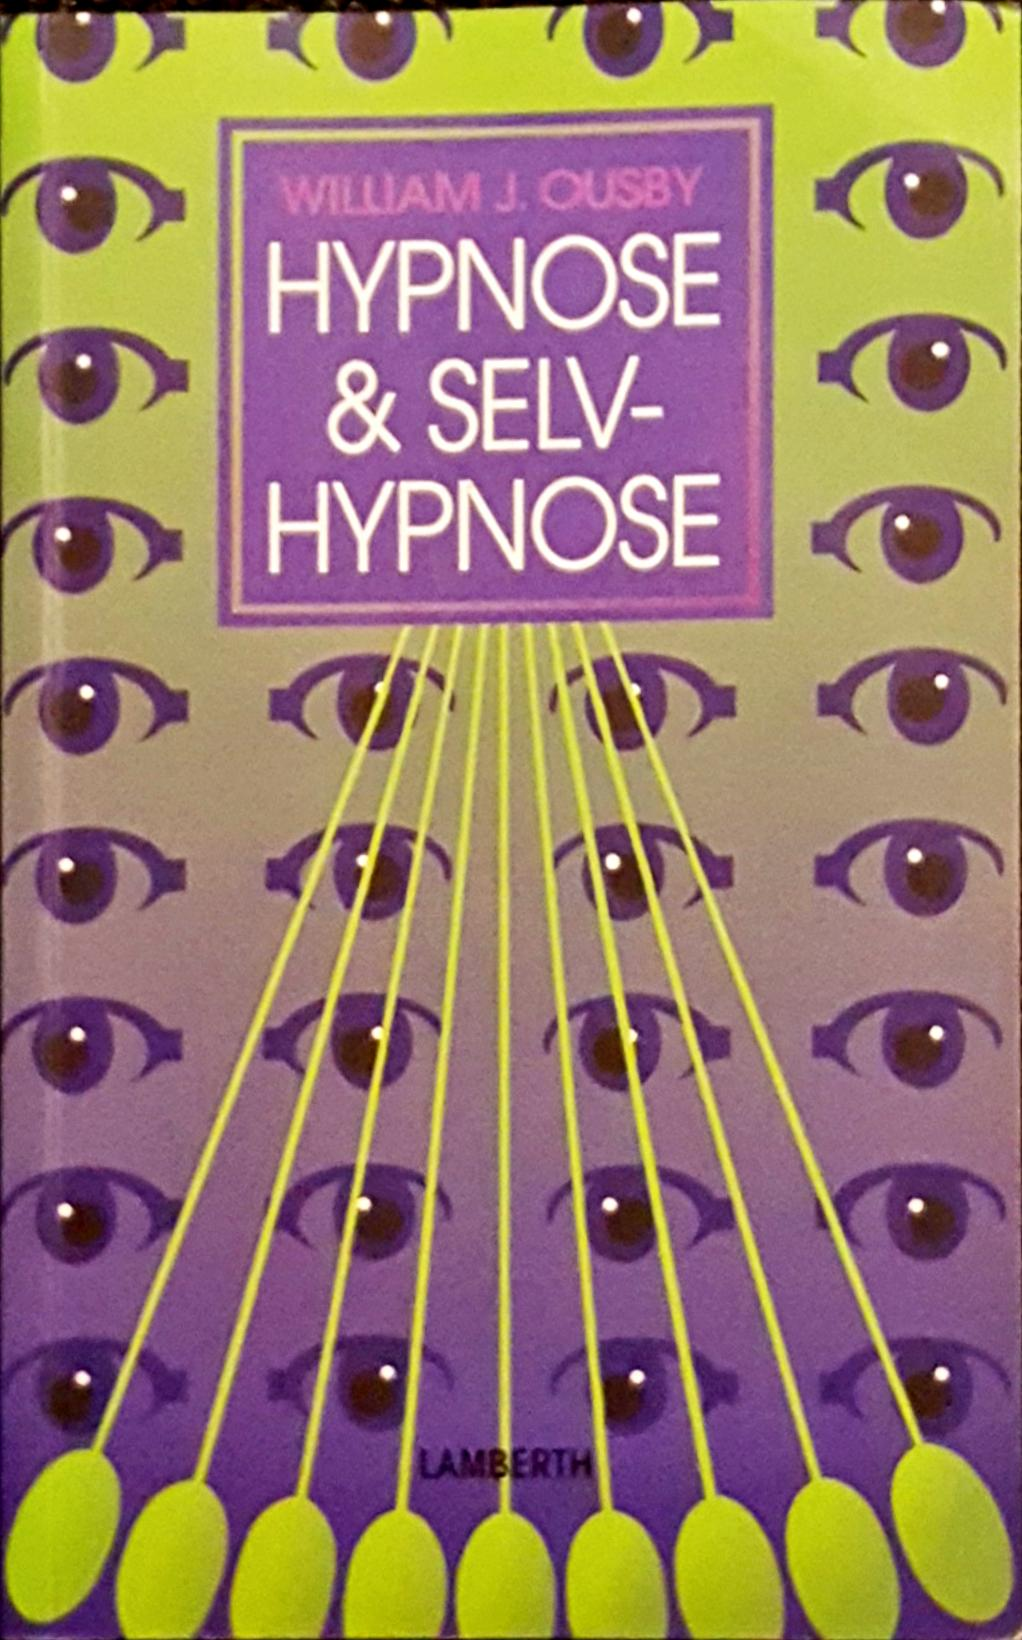 Hypnose & Selvhypnose Book Cover